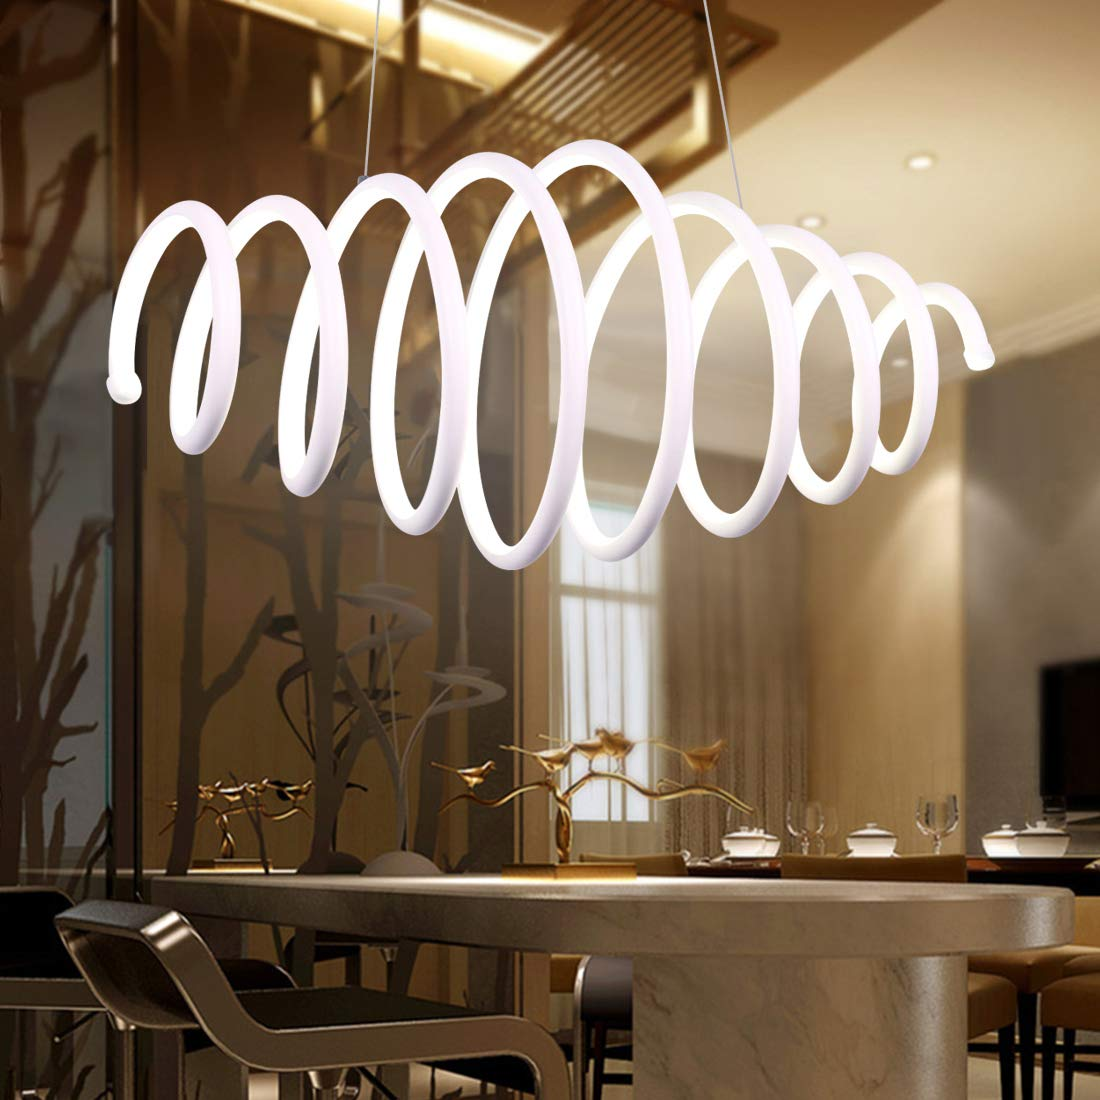 Modern Chandelier, Retractable Spiral Pendant Light, Stylish Hanging Ceiling Fixture with Adjustable Height for Hallway, Kitchen, Dining Room, Living Room, 45W Cool White